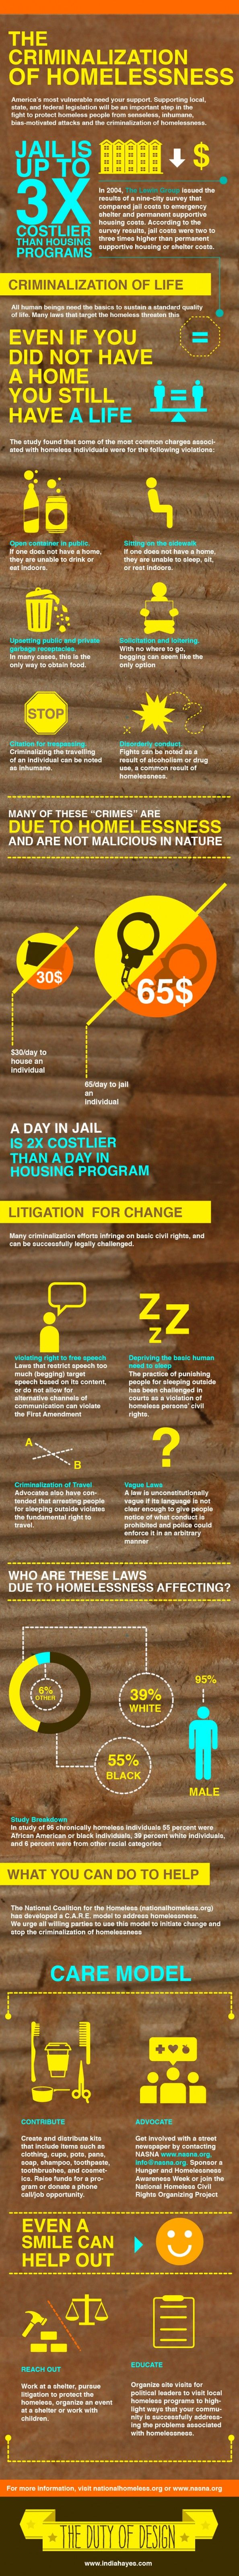 Criminalization of #Homelessness #Infographic - #humanrights